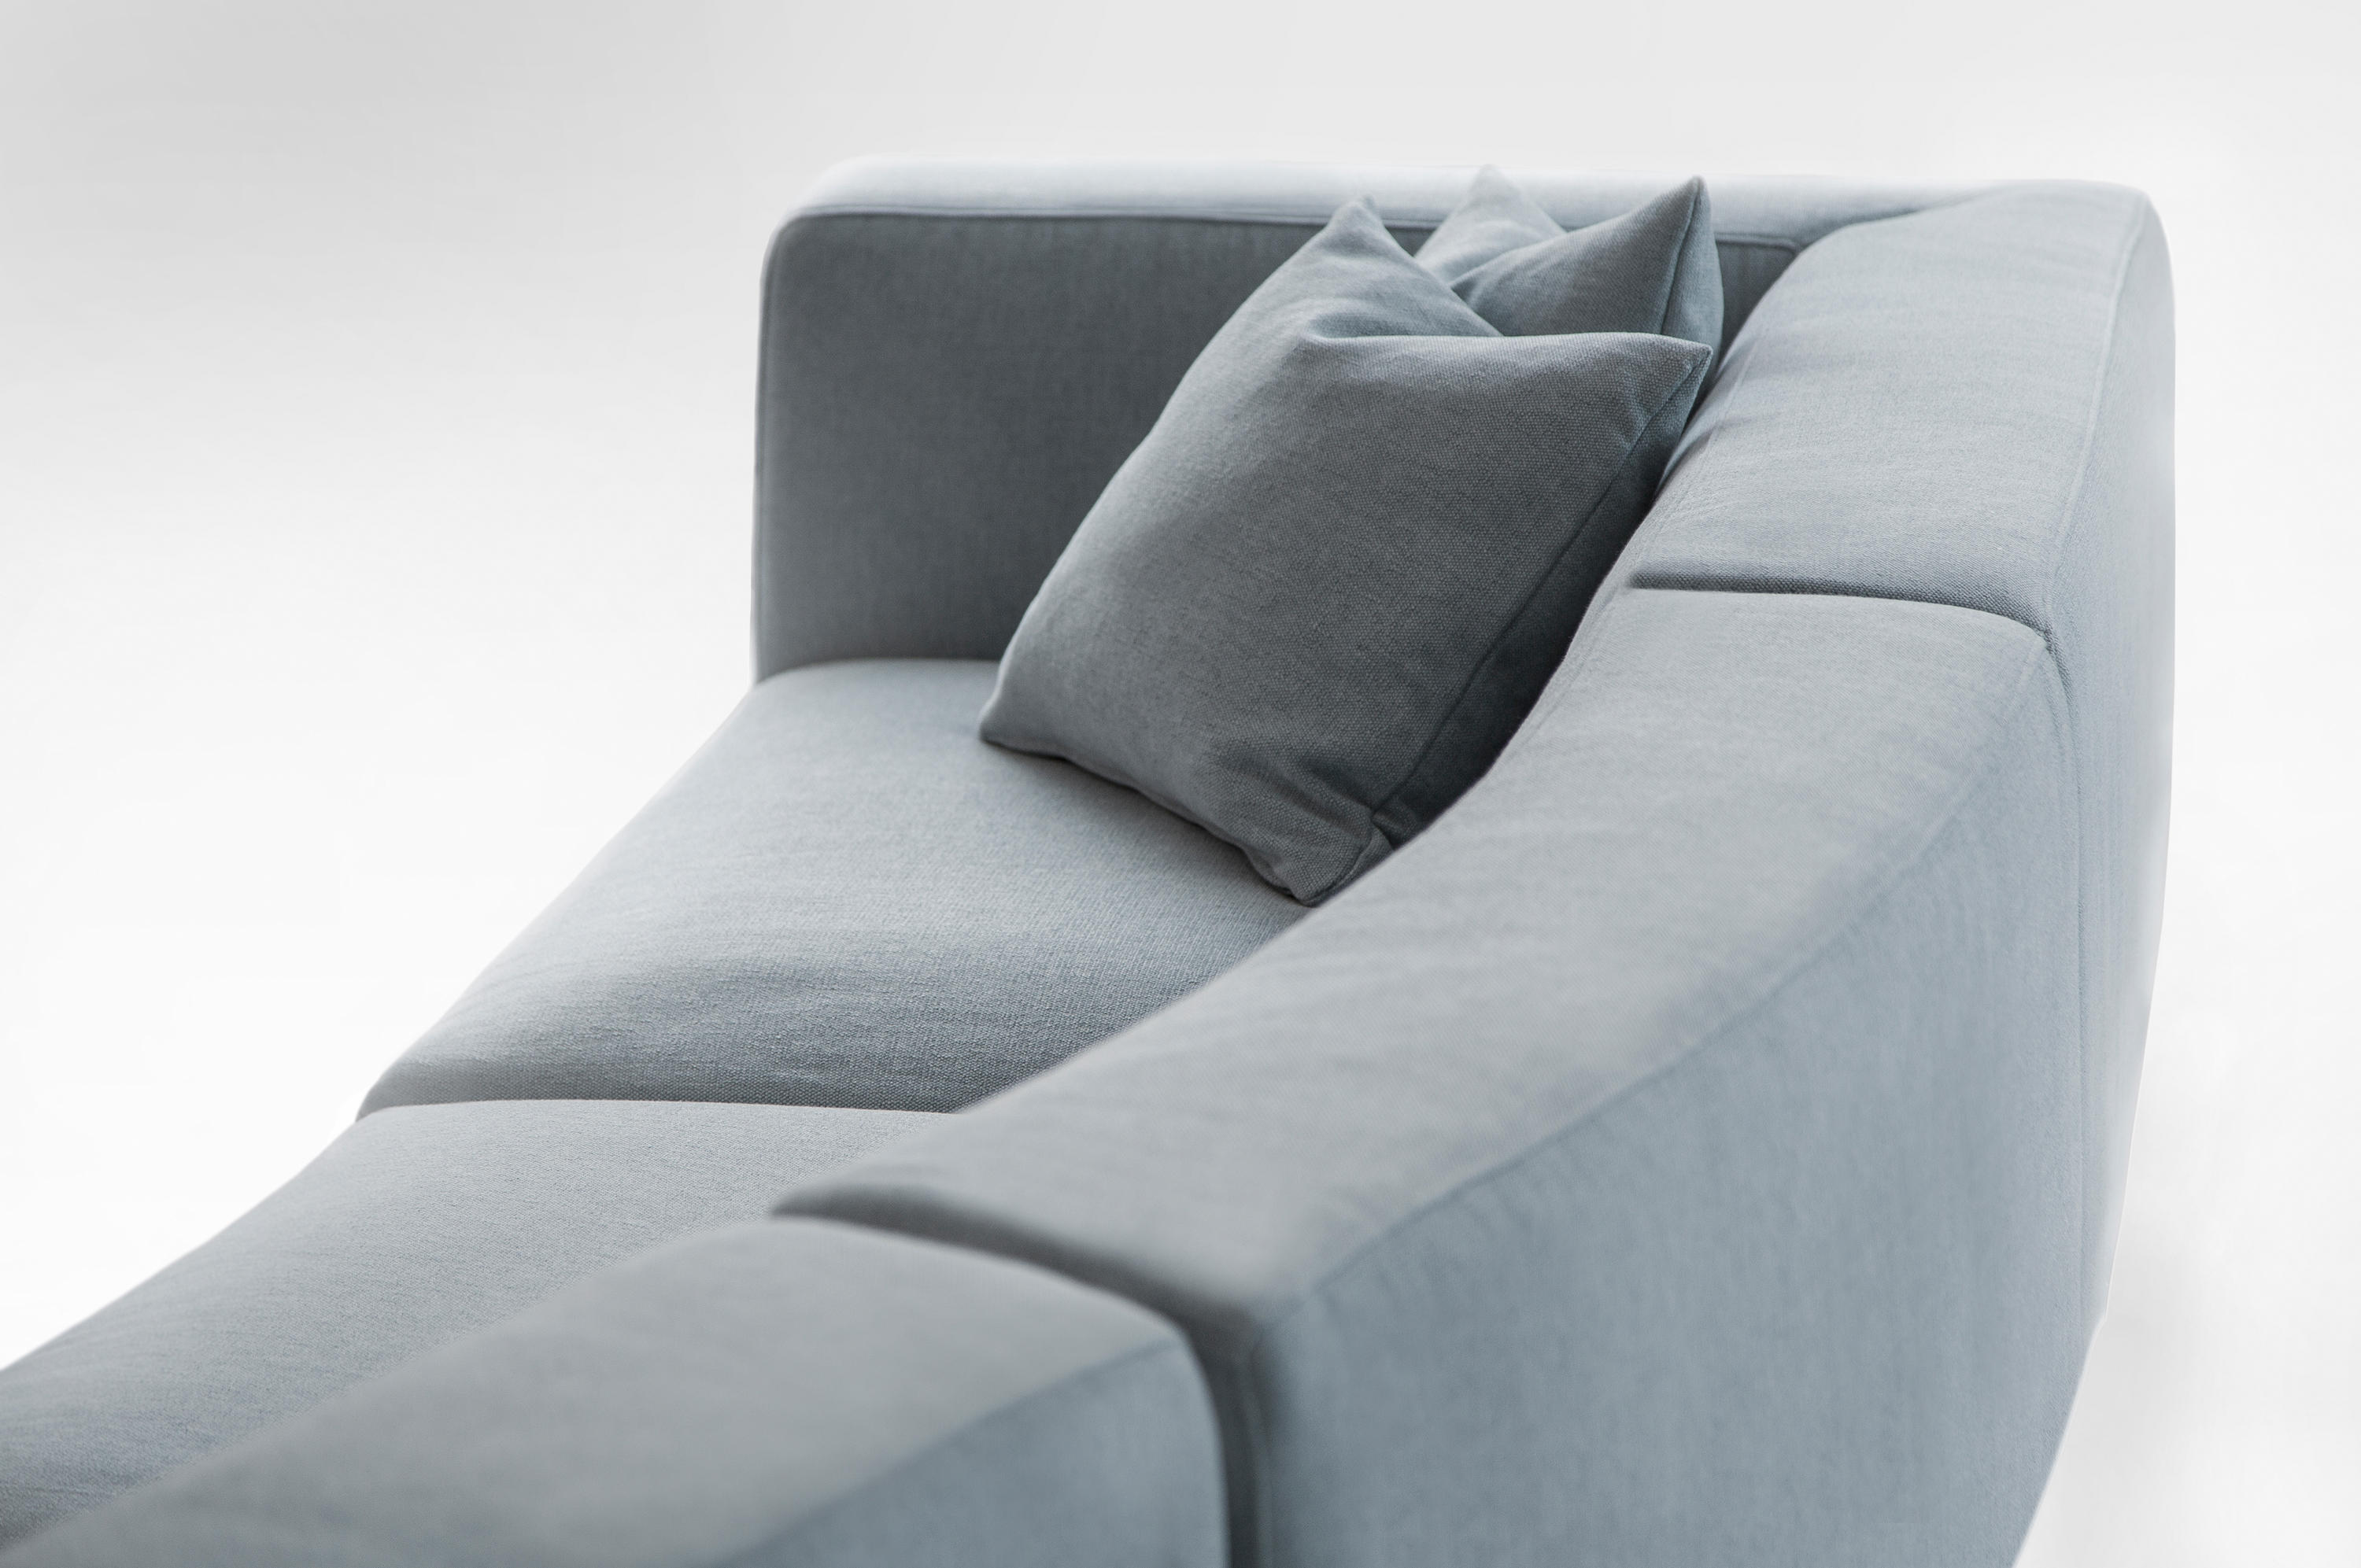 Endless Modular Sofa By Bensen Sofas